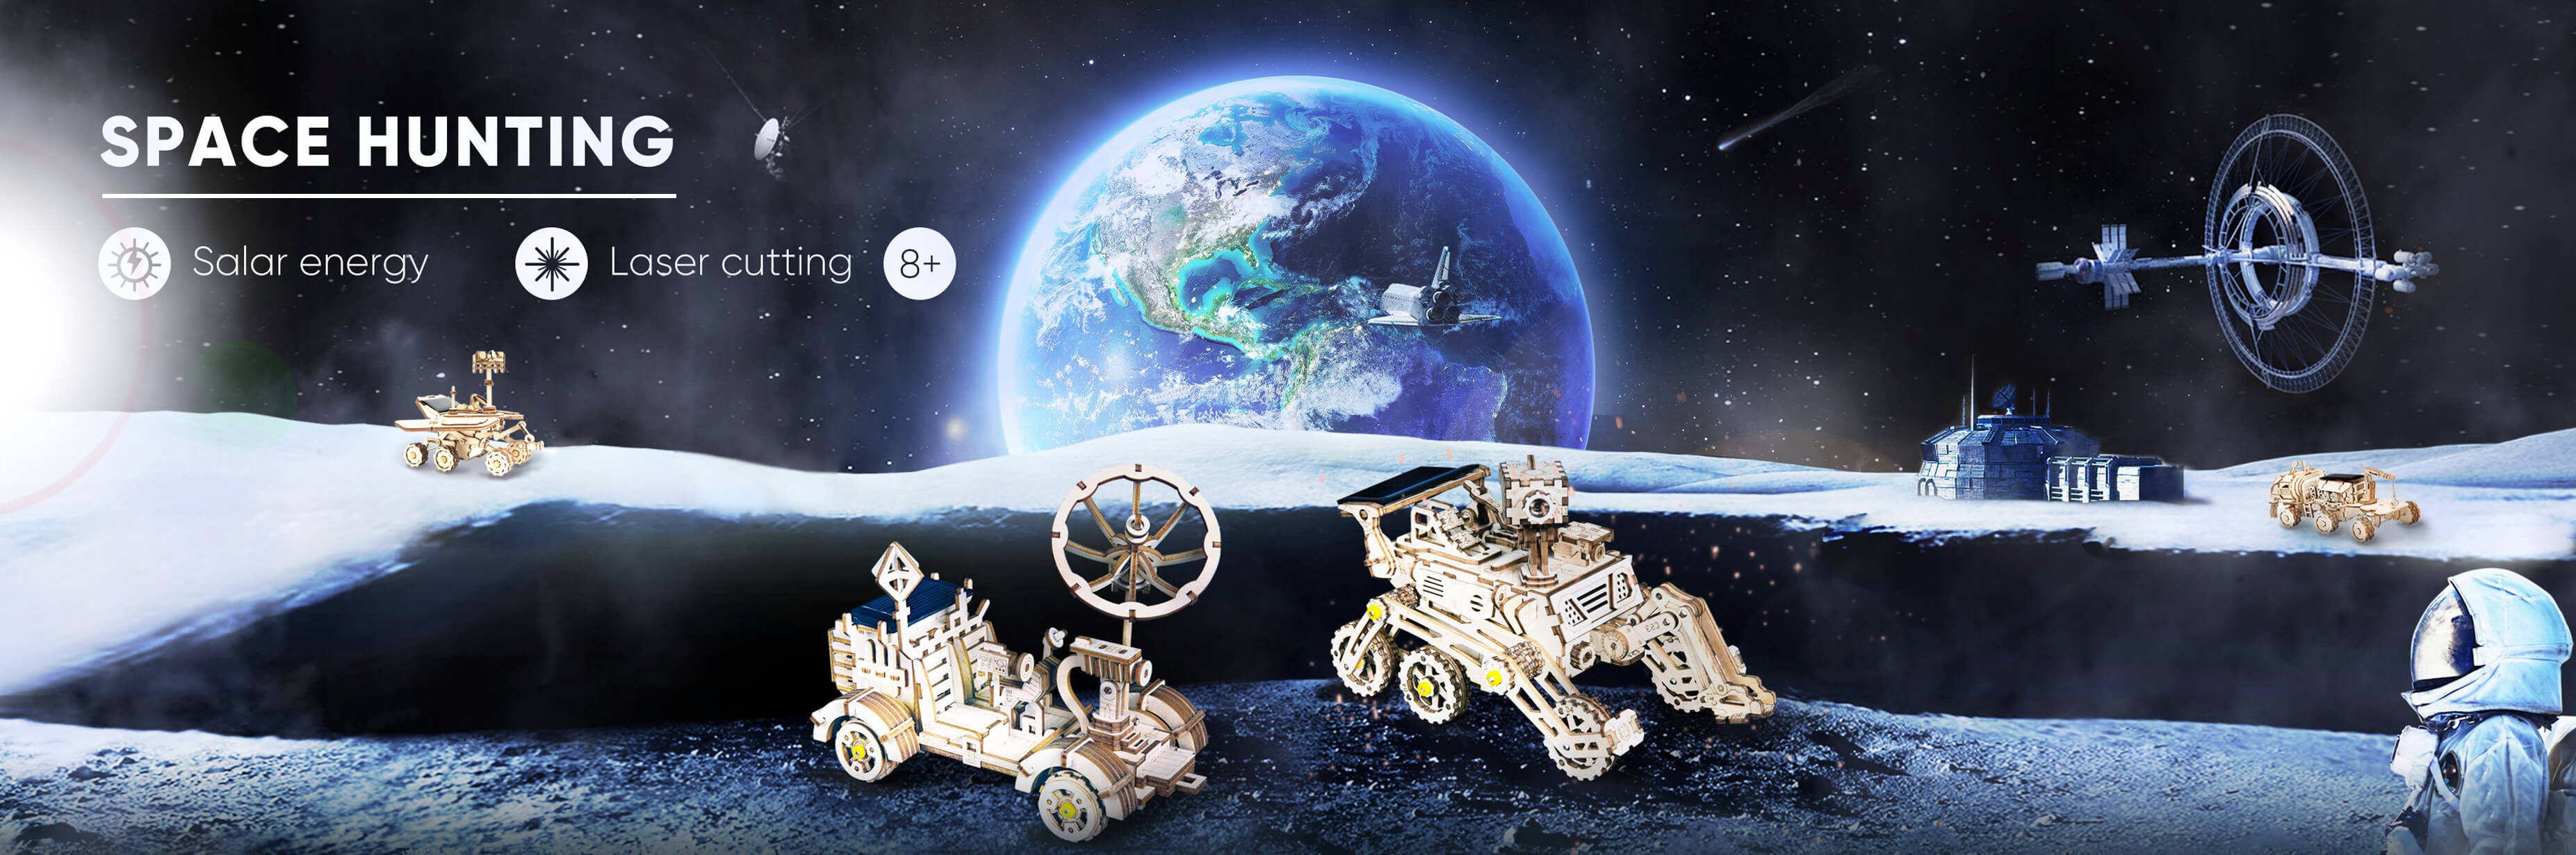 ROKR store - Mechanical 3D Puzzles, Wooden Model Toys